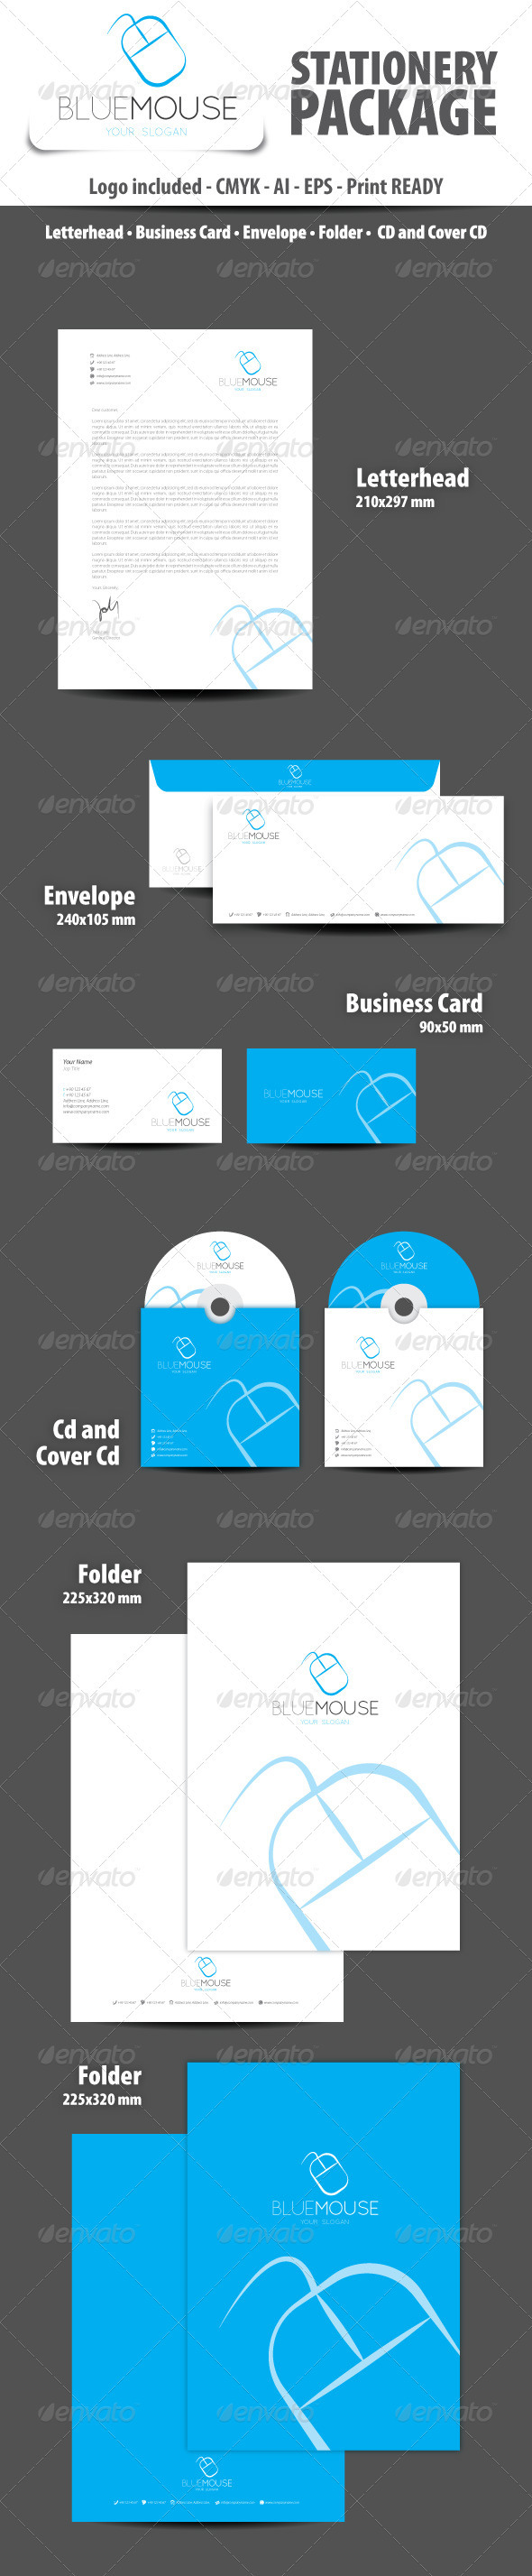 Blue Mouse Stationery Package